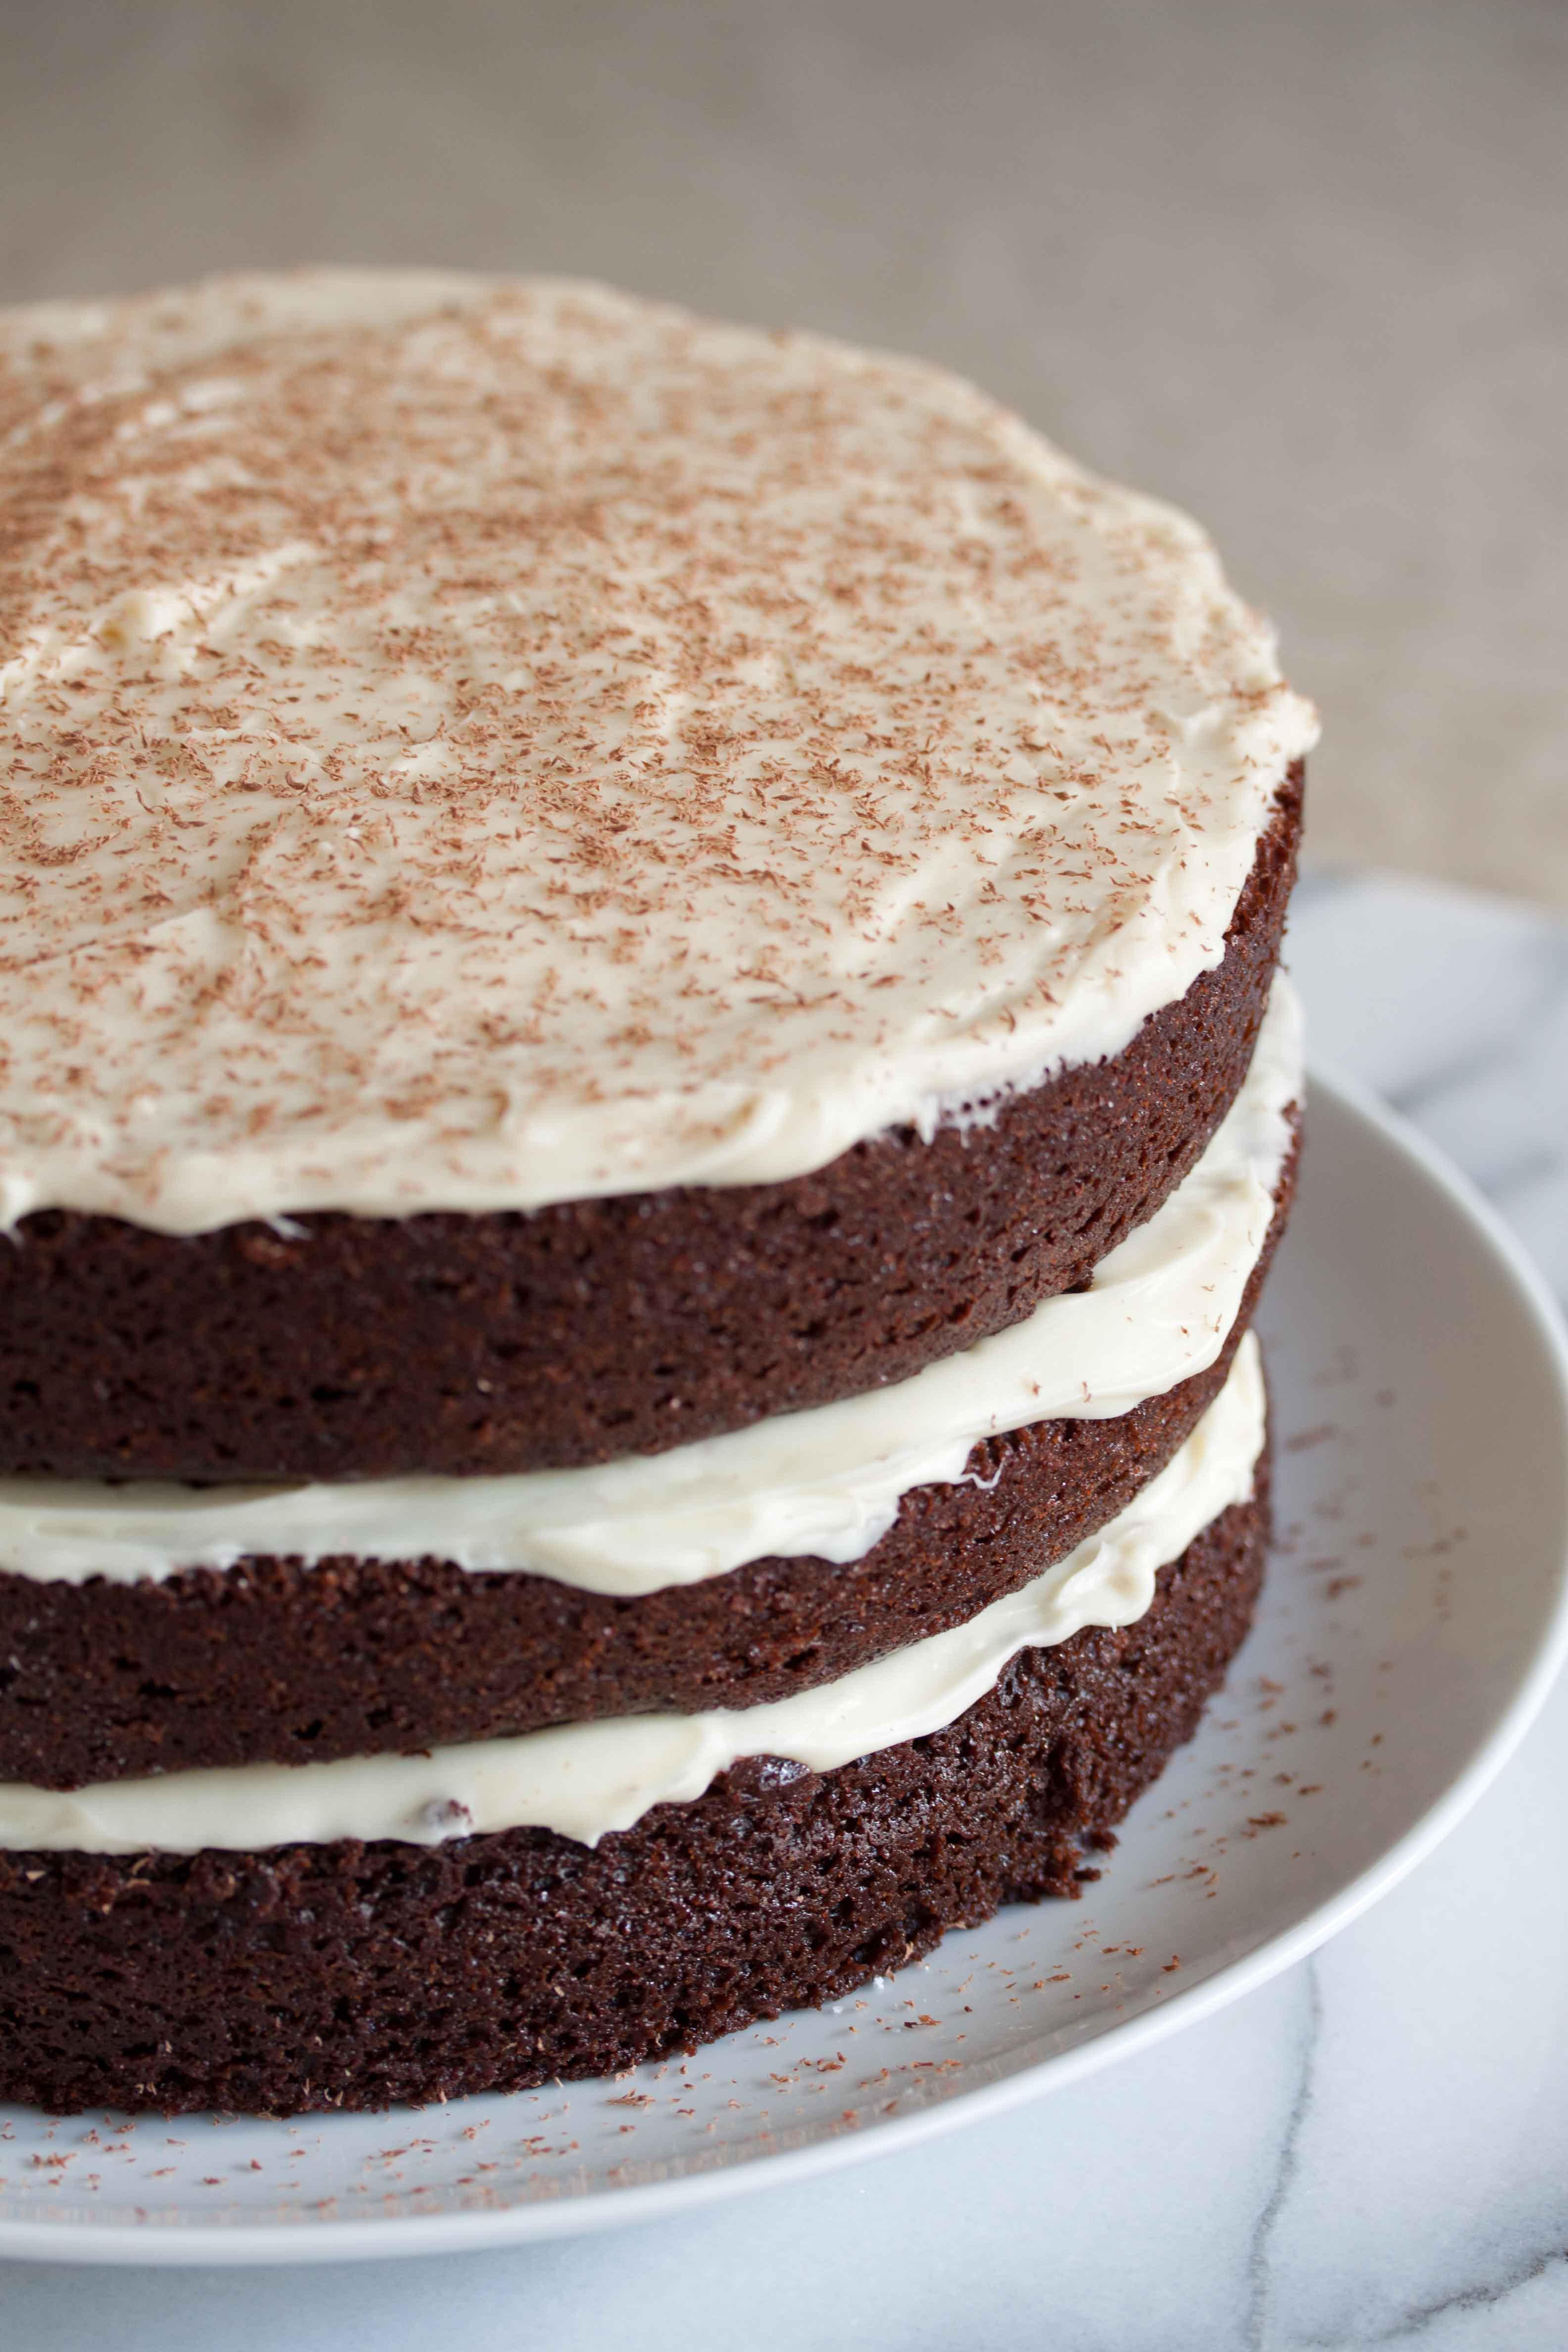 Chocolate cake recipe with white frosting